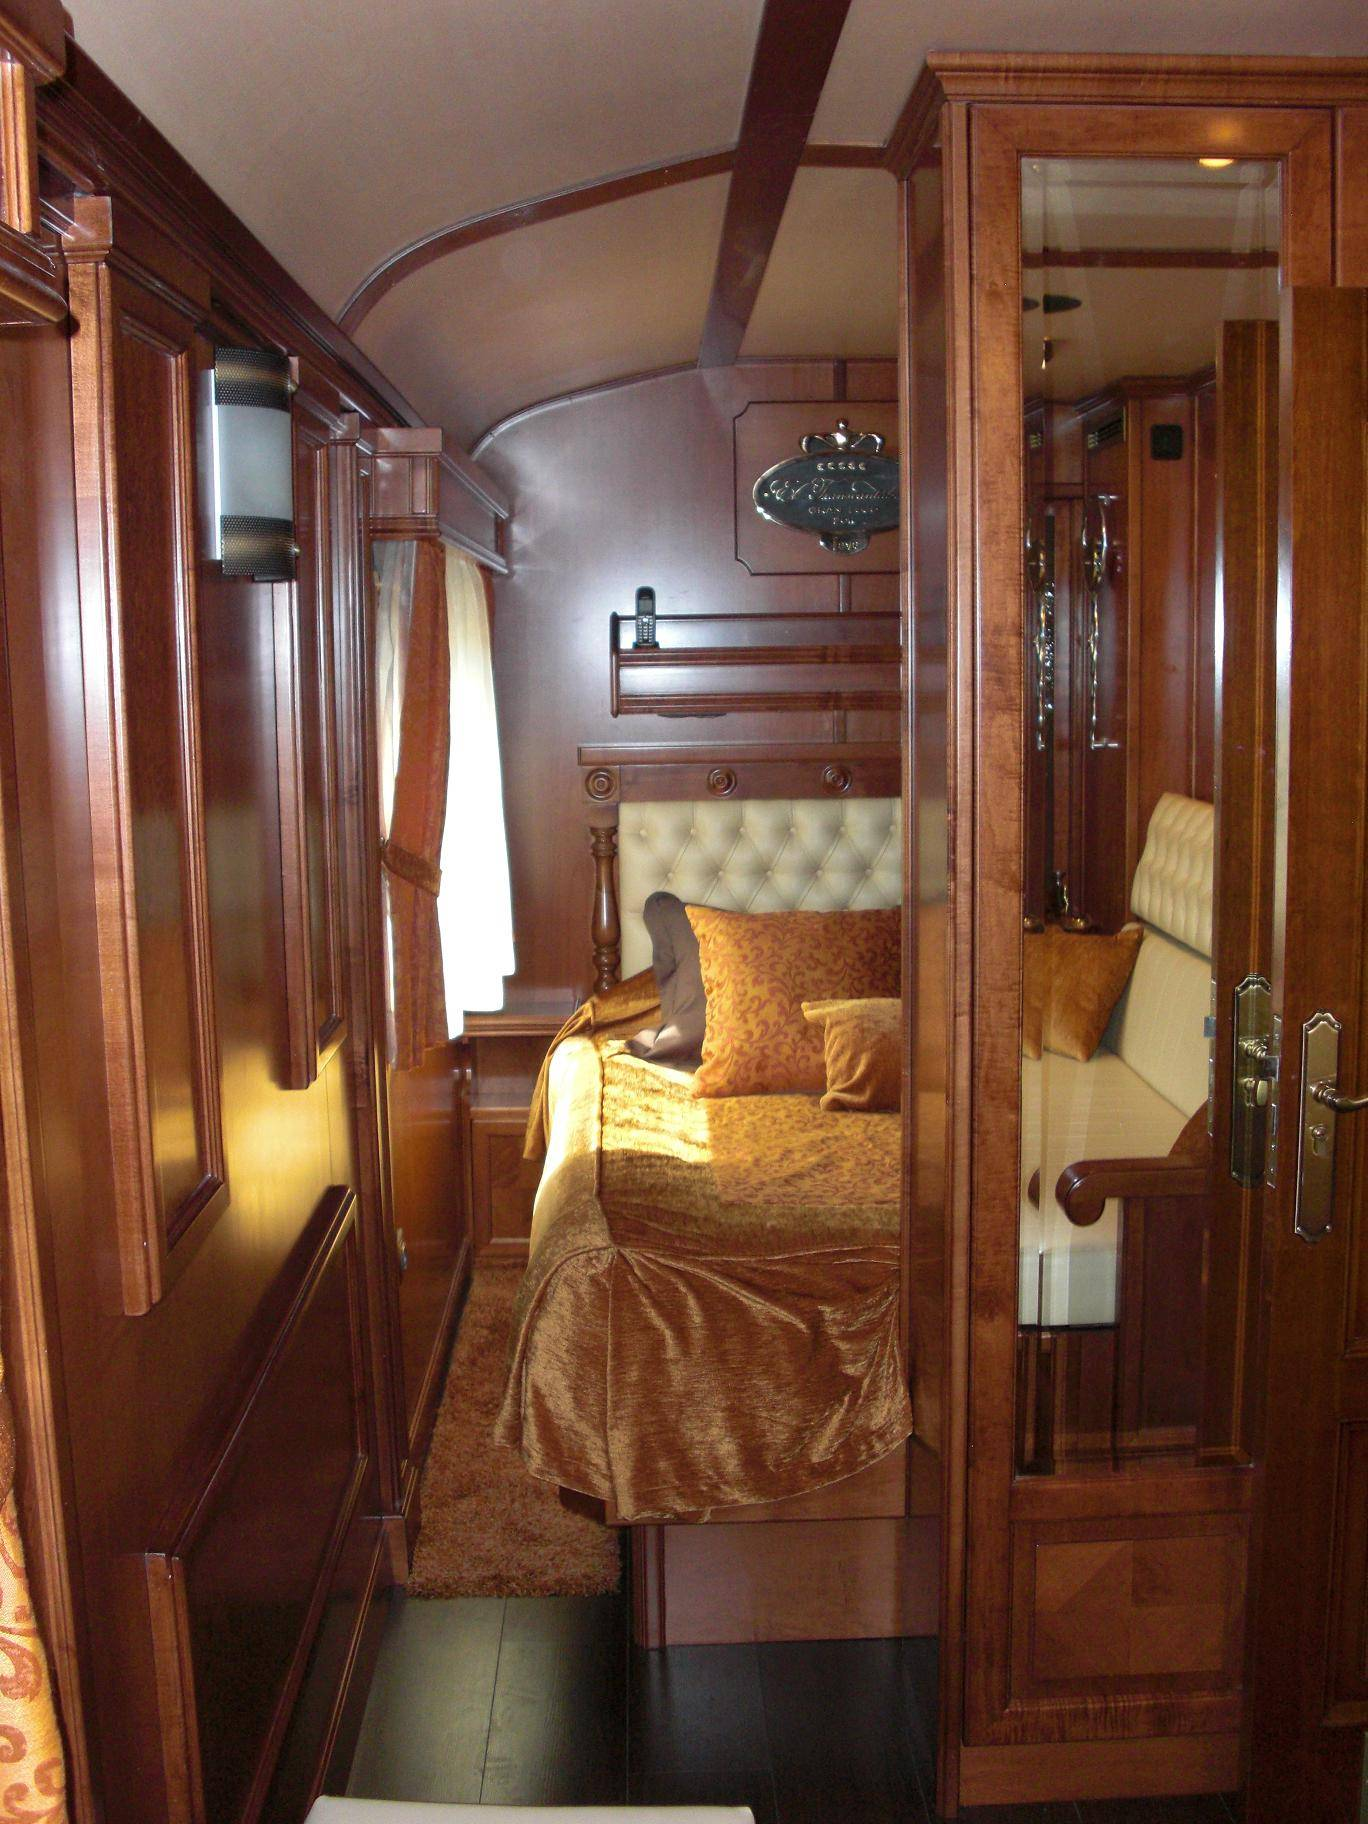 El Transcantabrico Spain Luxury Train - 1